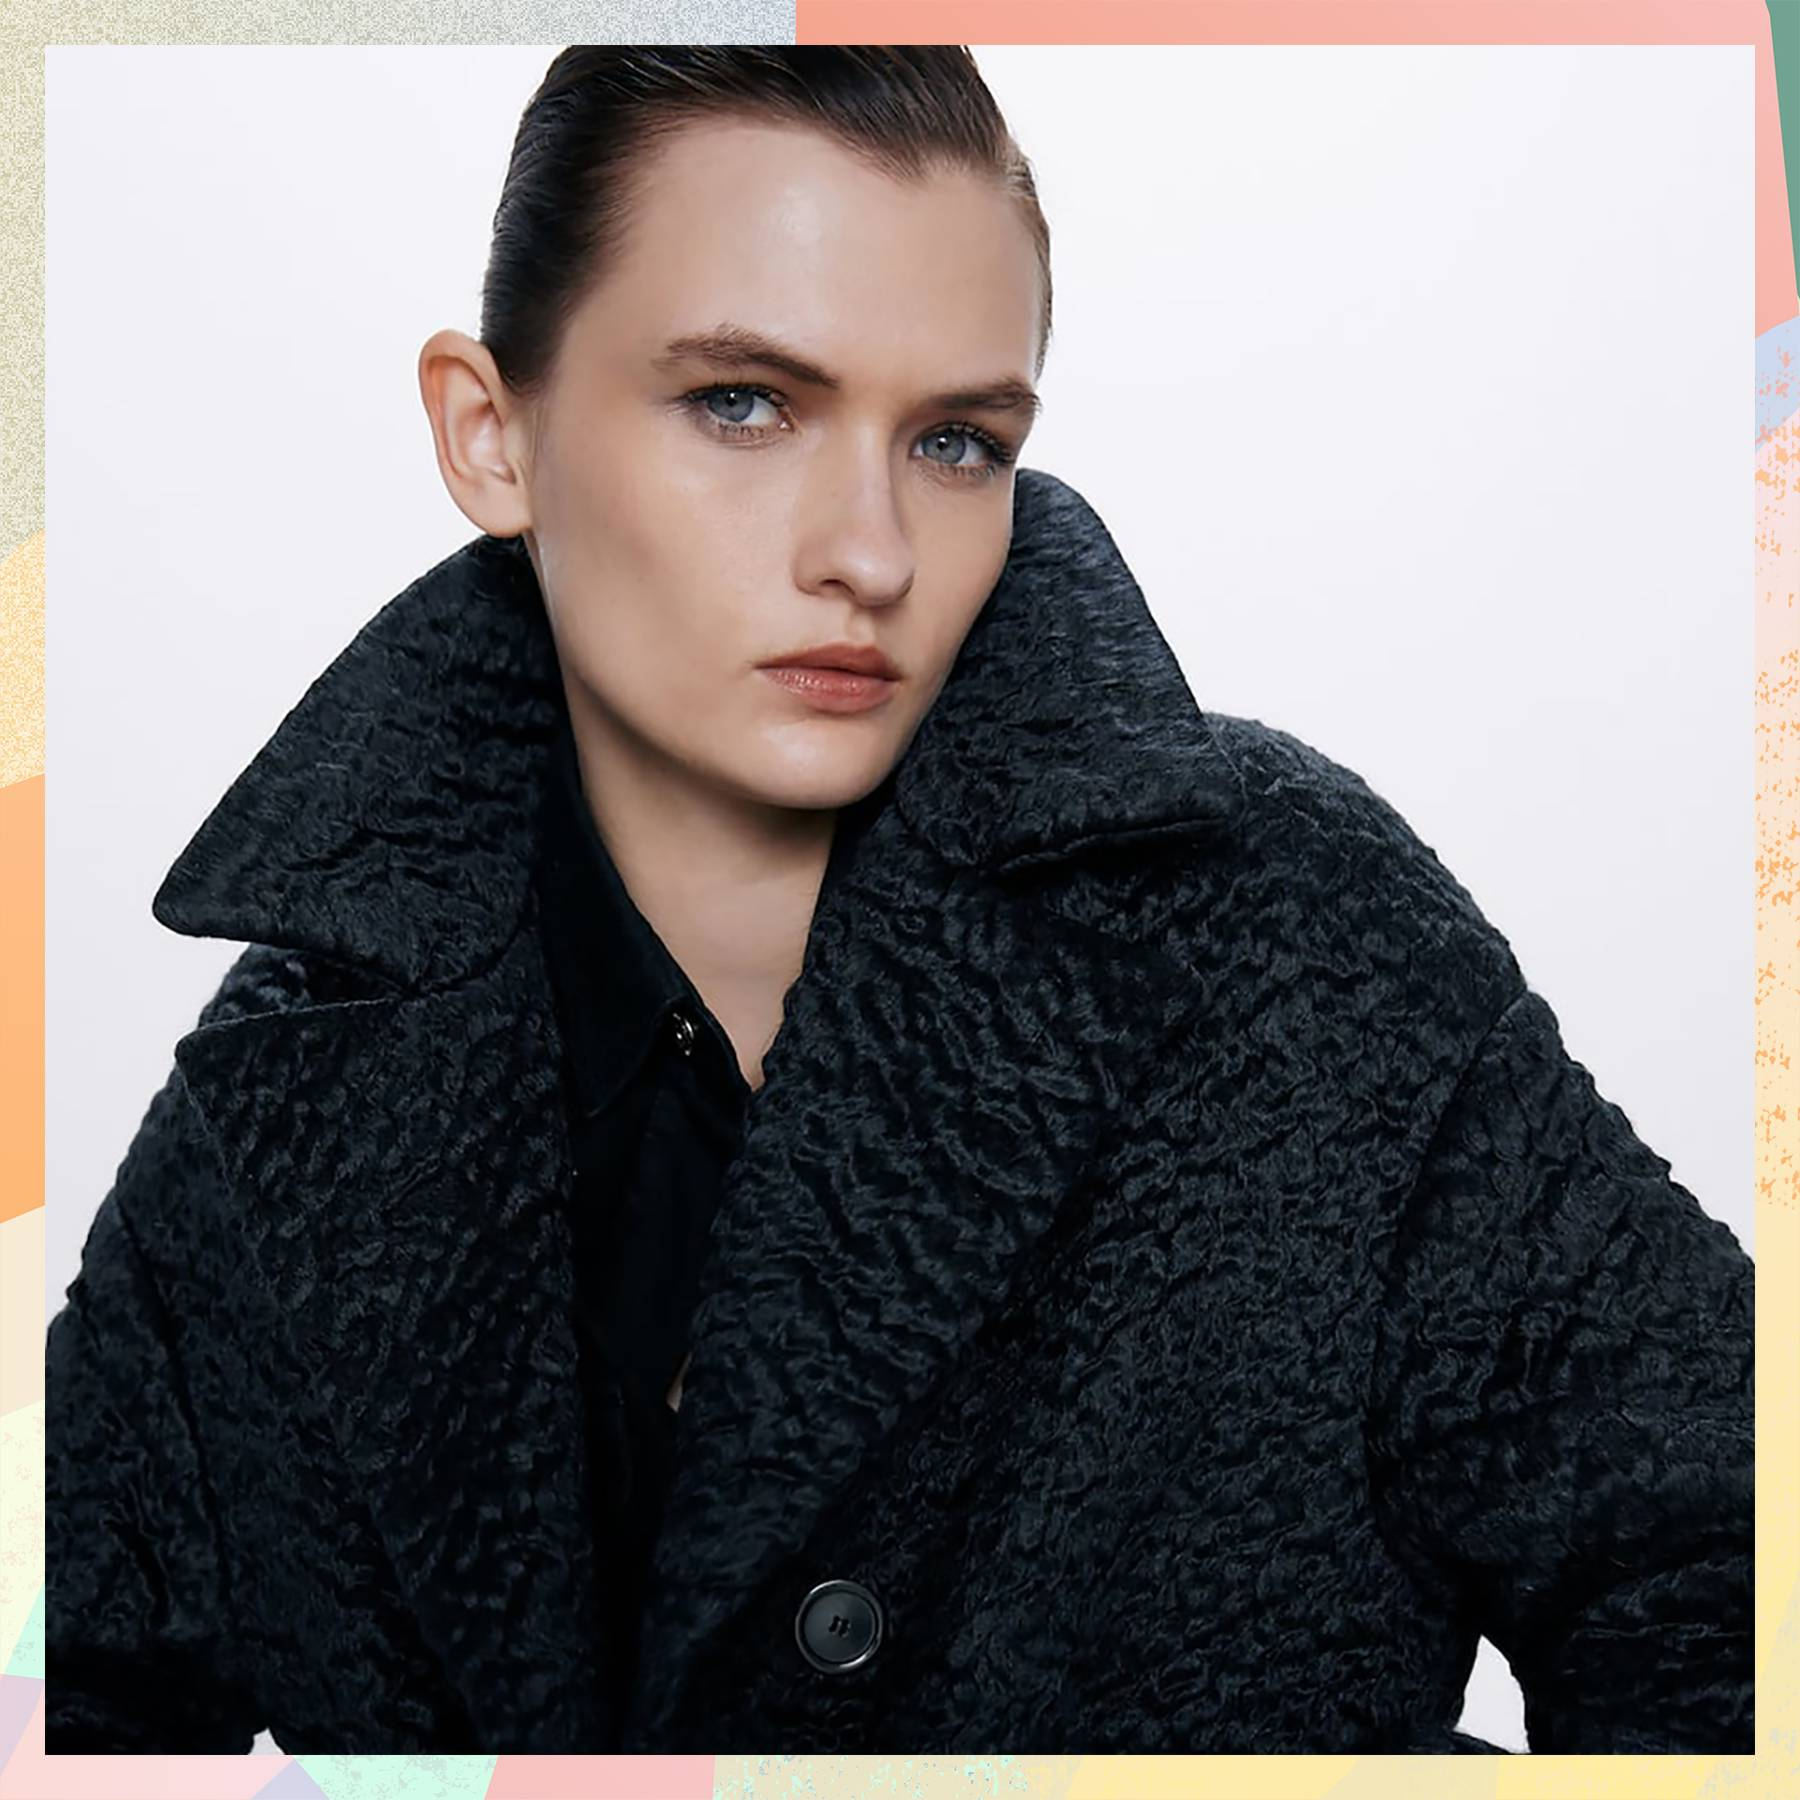 Zara just dropped a brand new winter coat collection and there's a style for literally everyone